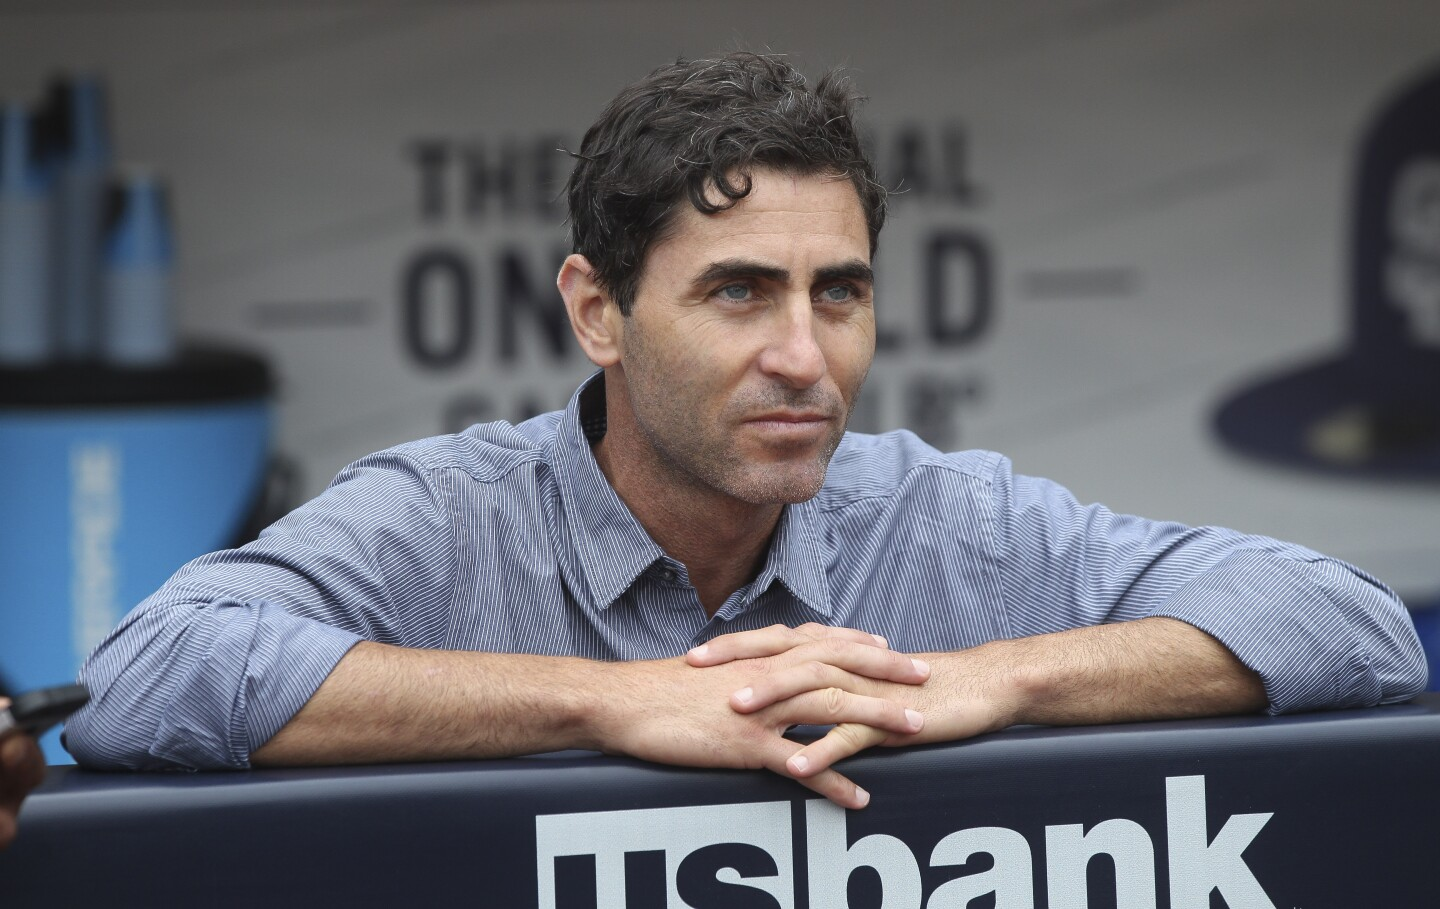 Padres General Manager A.J. Preller watches the Padres during batting practice before the Padres play the Nationals at Petco Park on Thursday, June 6, 2019 in San Diego, California.